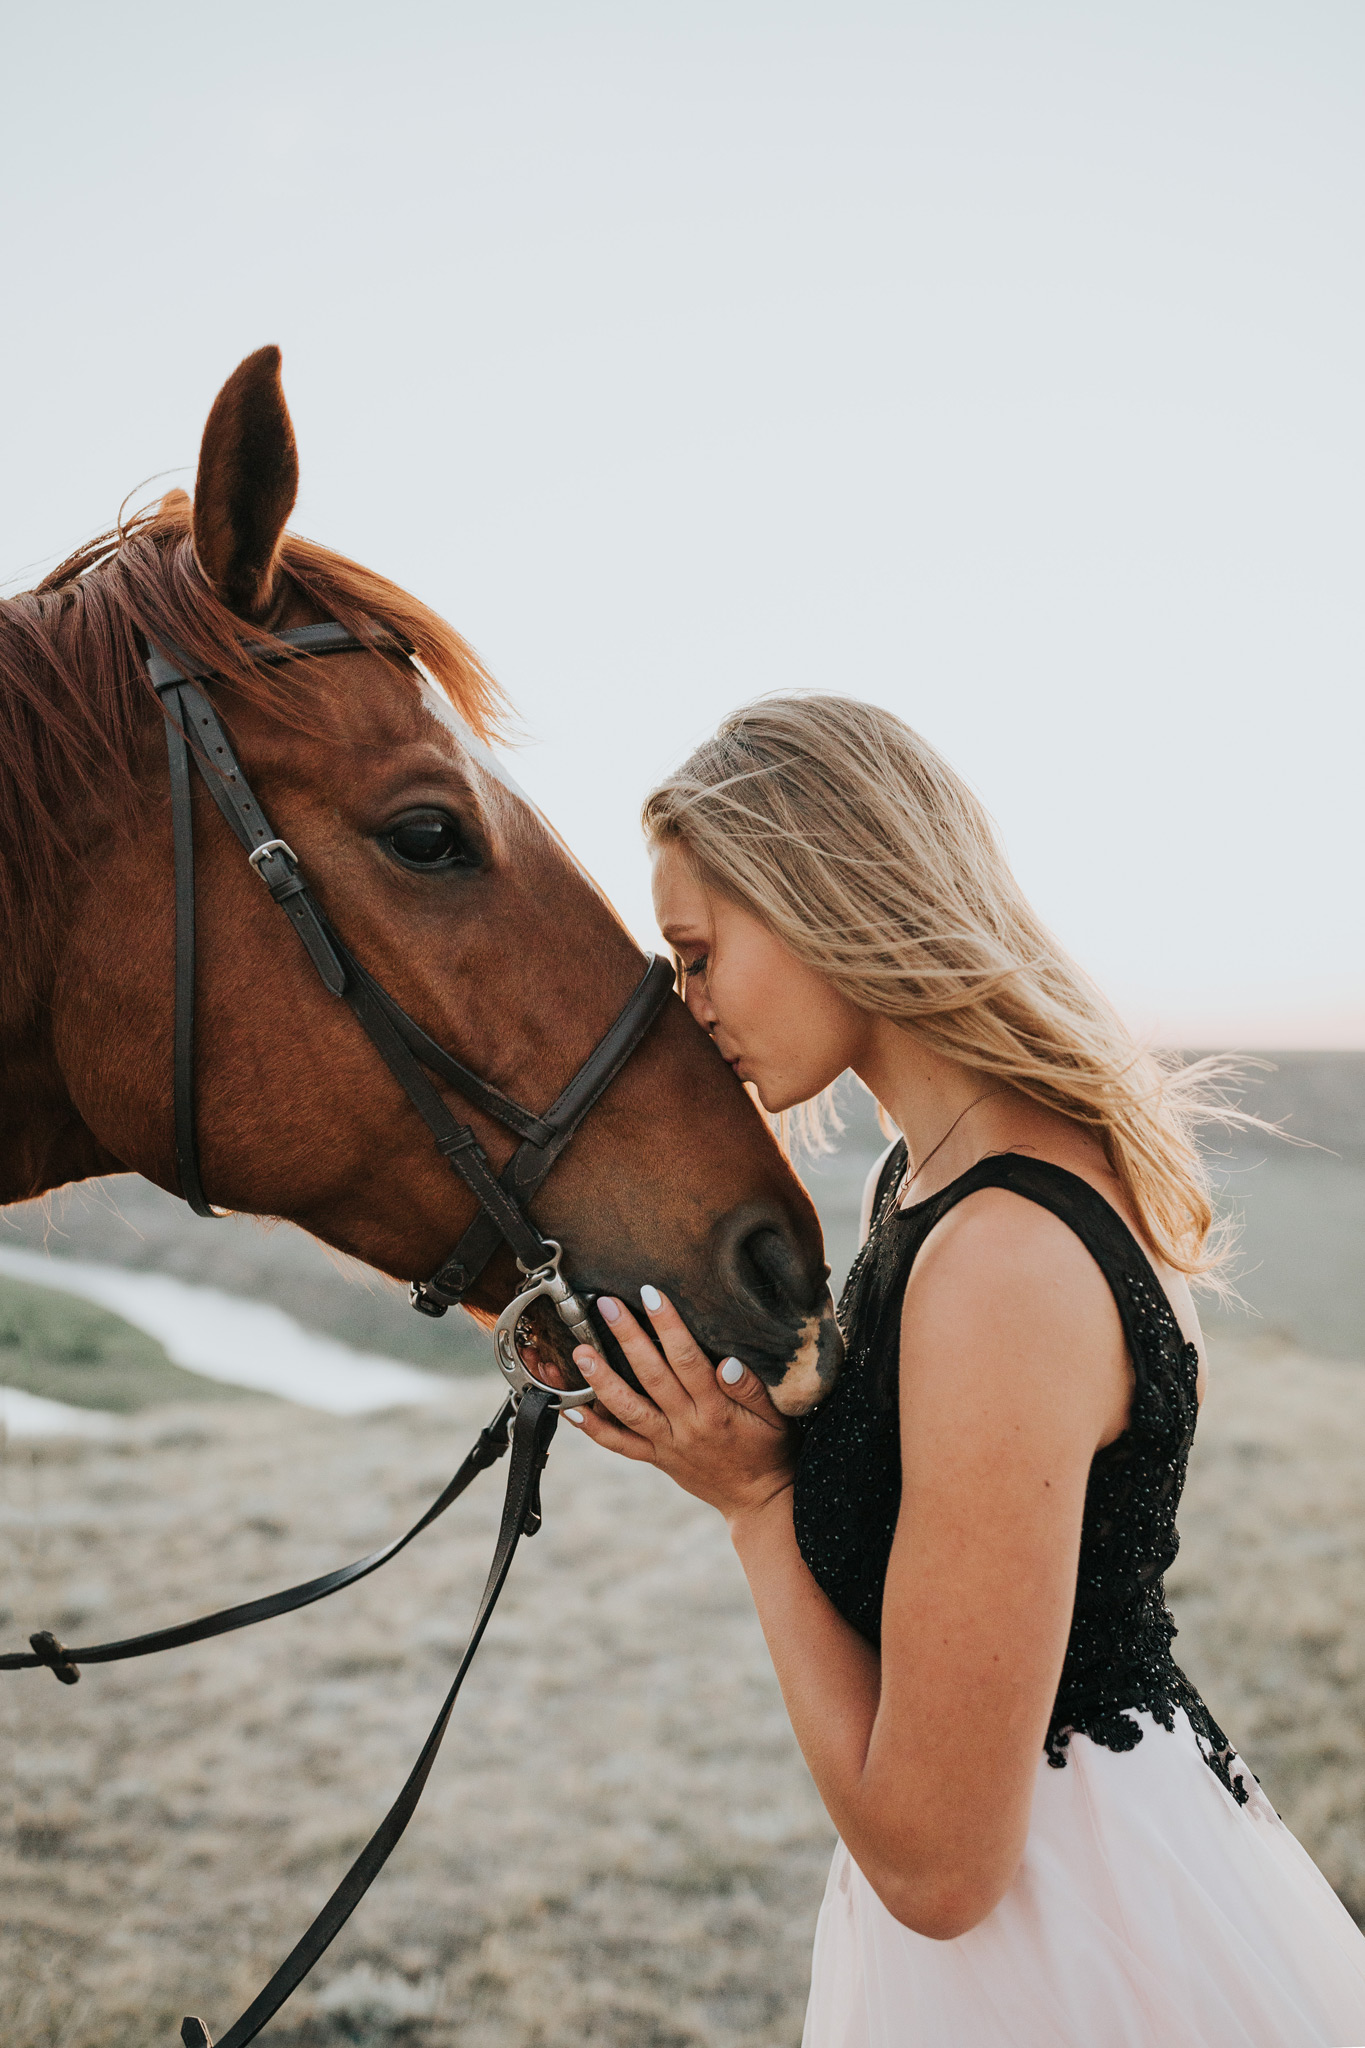 grad girl kissing horse on nose equine photo